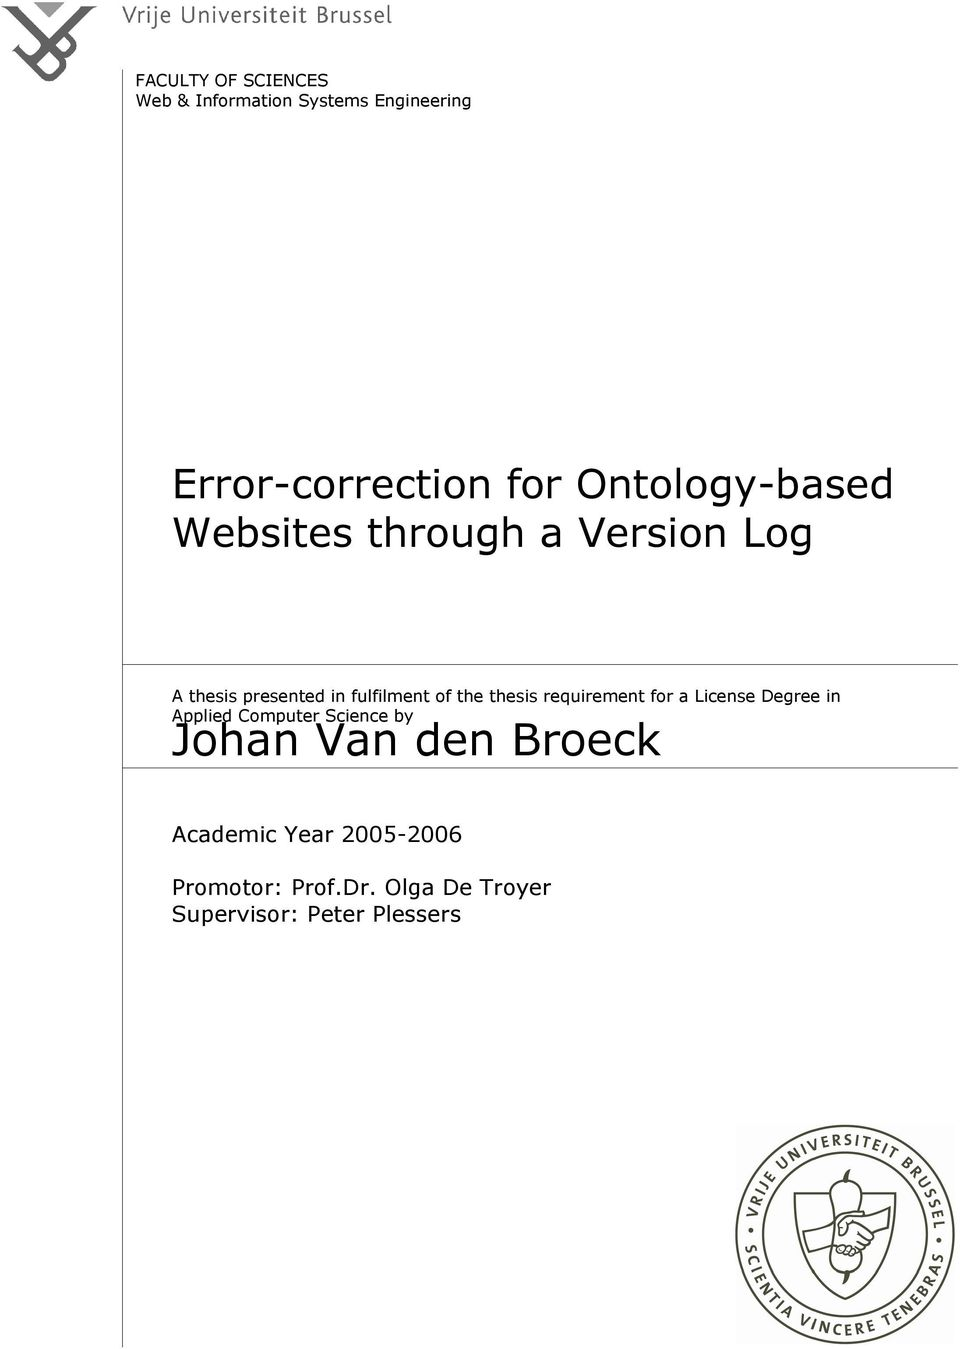 thesis requirement for a License Degree in Applied Computer Science by Johan Van den